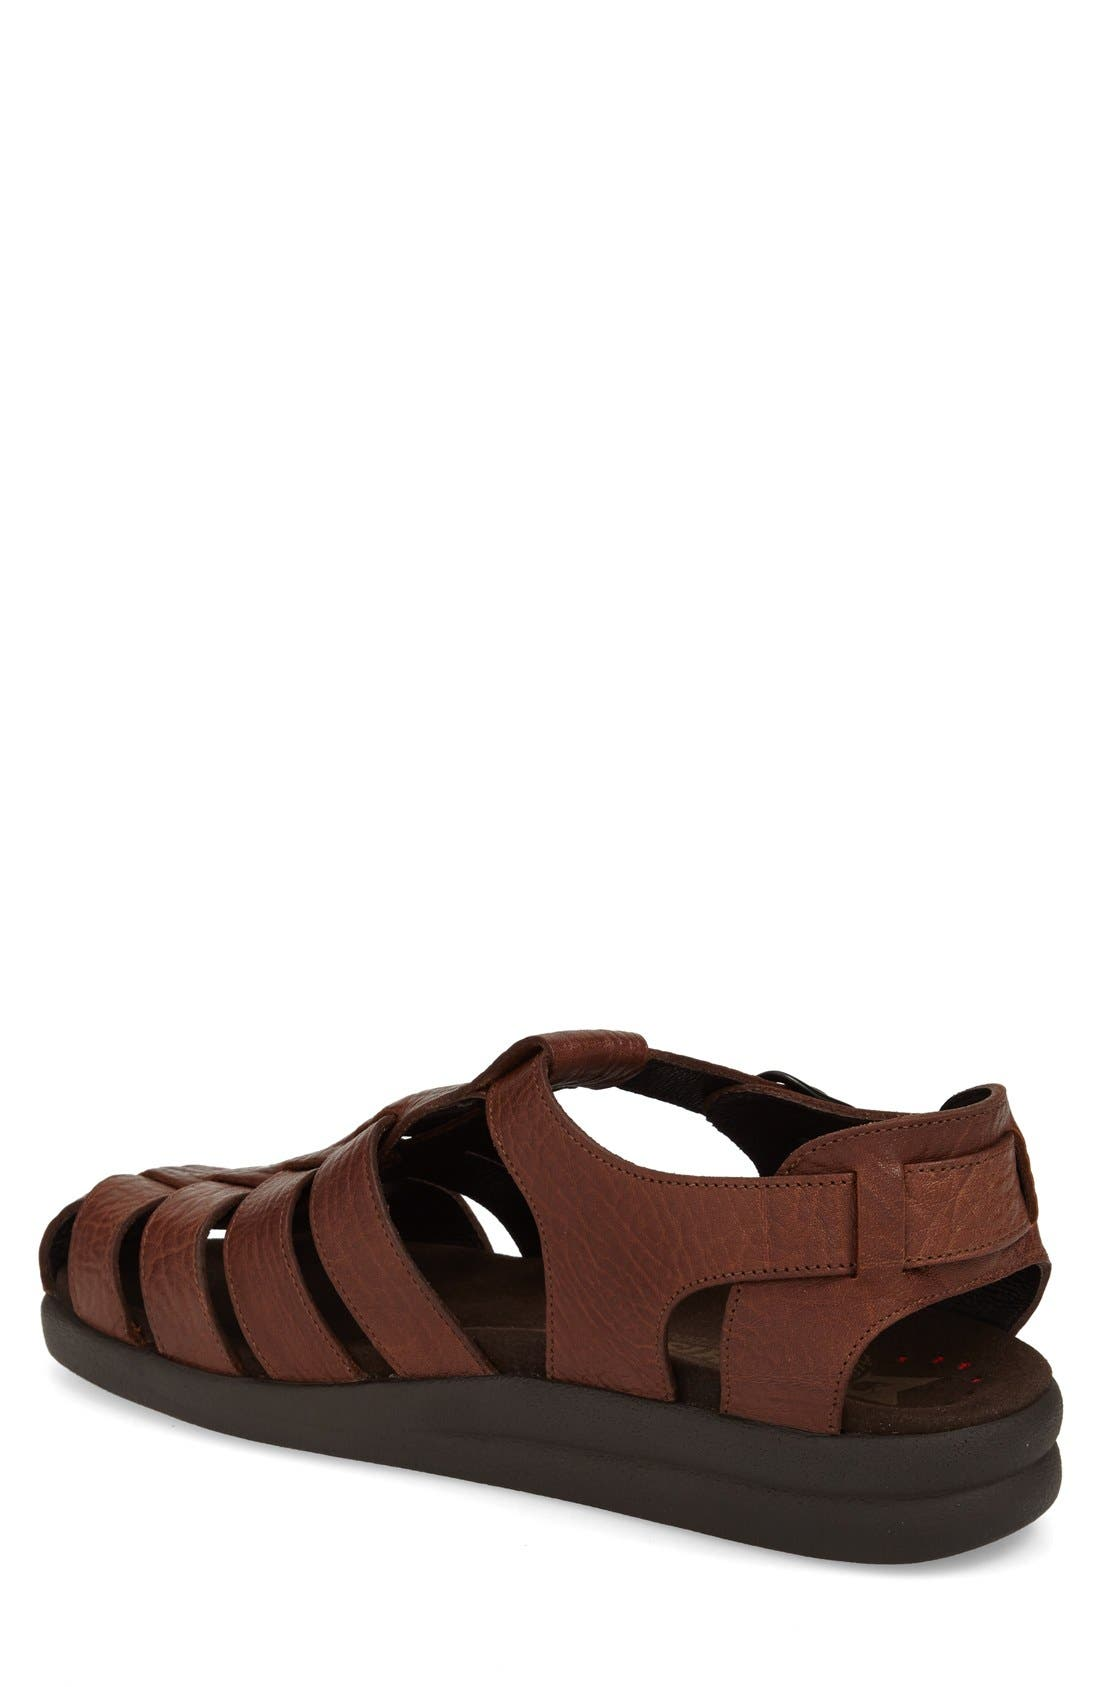 'Sam' Sandal,                             Alternate thumbnail 6, color,                             TAN